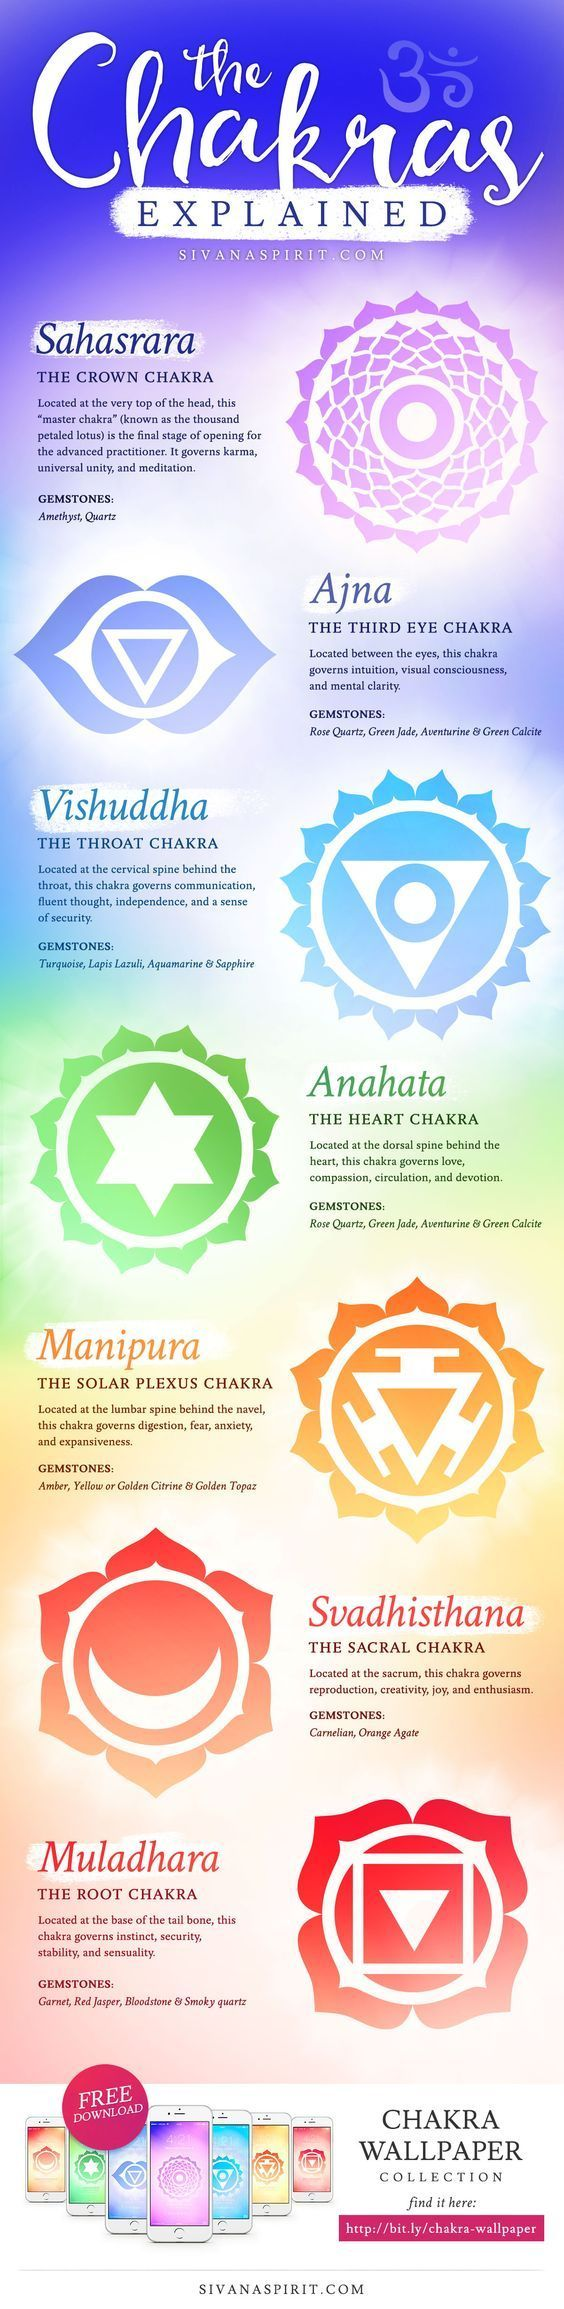 The Chakras Explained